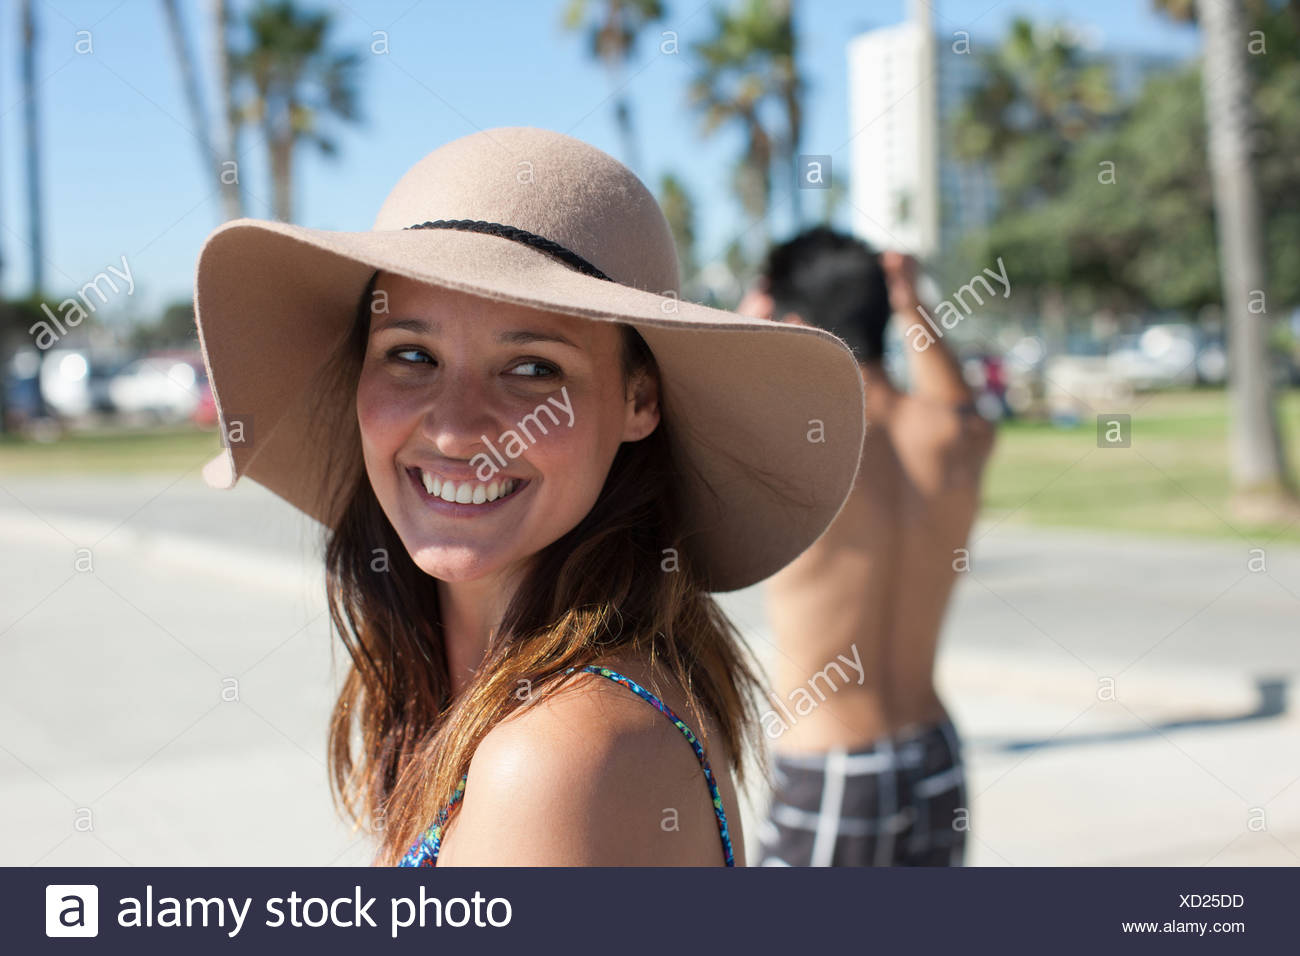 Woman wearing hat - Stock Image